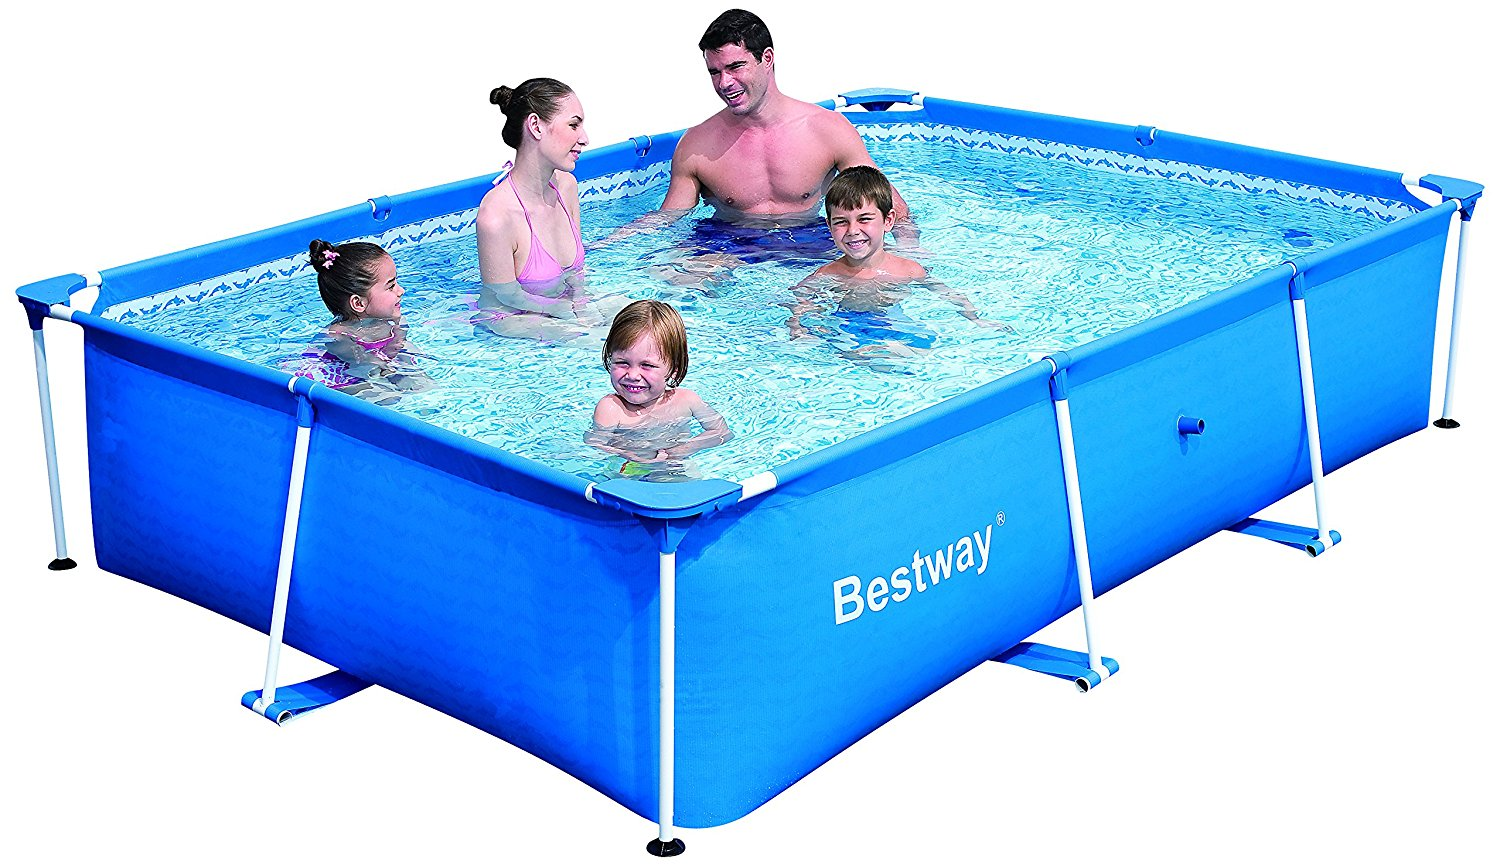 bestway deluxe splash frame pool best above ground pool guide. Black Bedroom Furniture Sets. Home Design Ideas